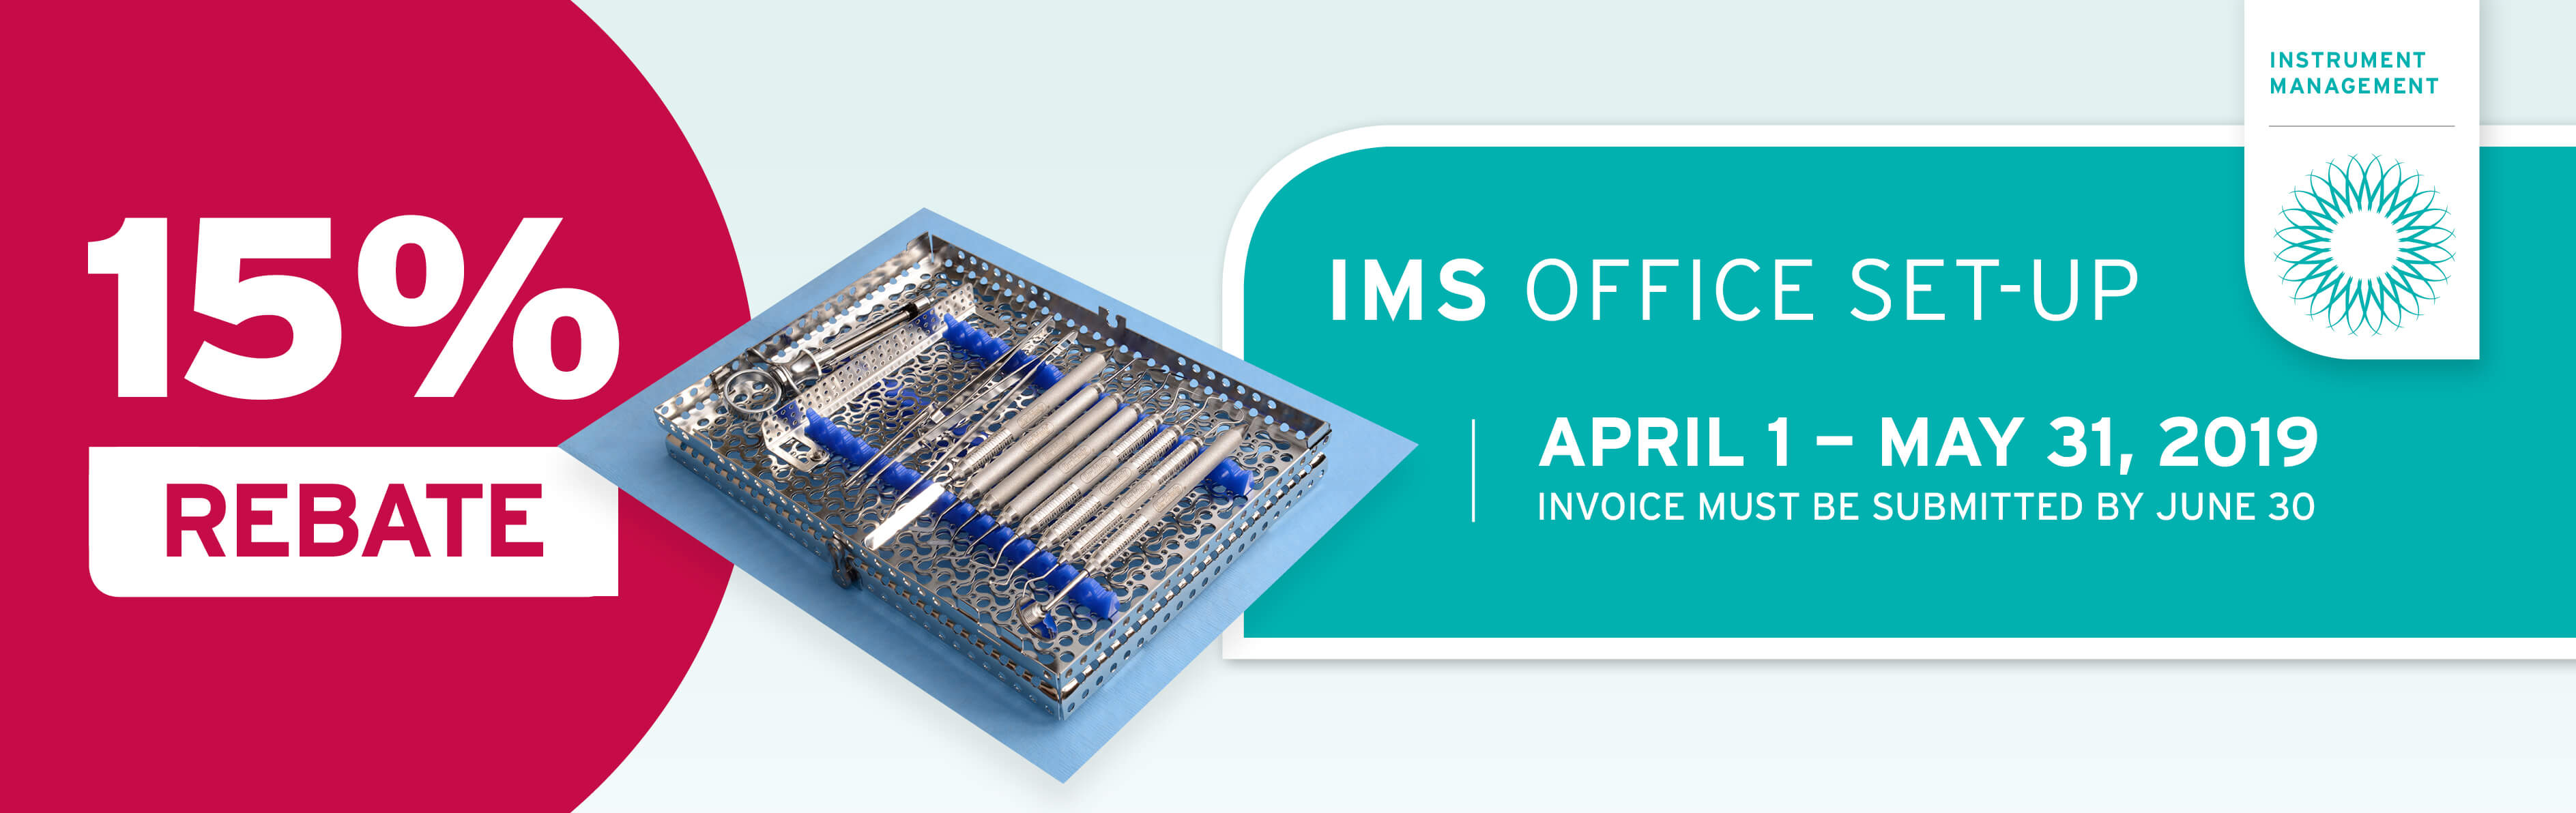 HU-FRIEDY SPECIAL 15% IMS OFFICE SET-UP REBATE